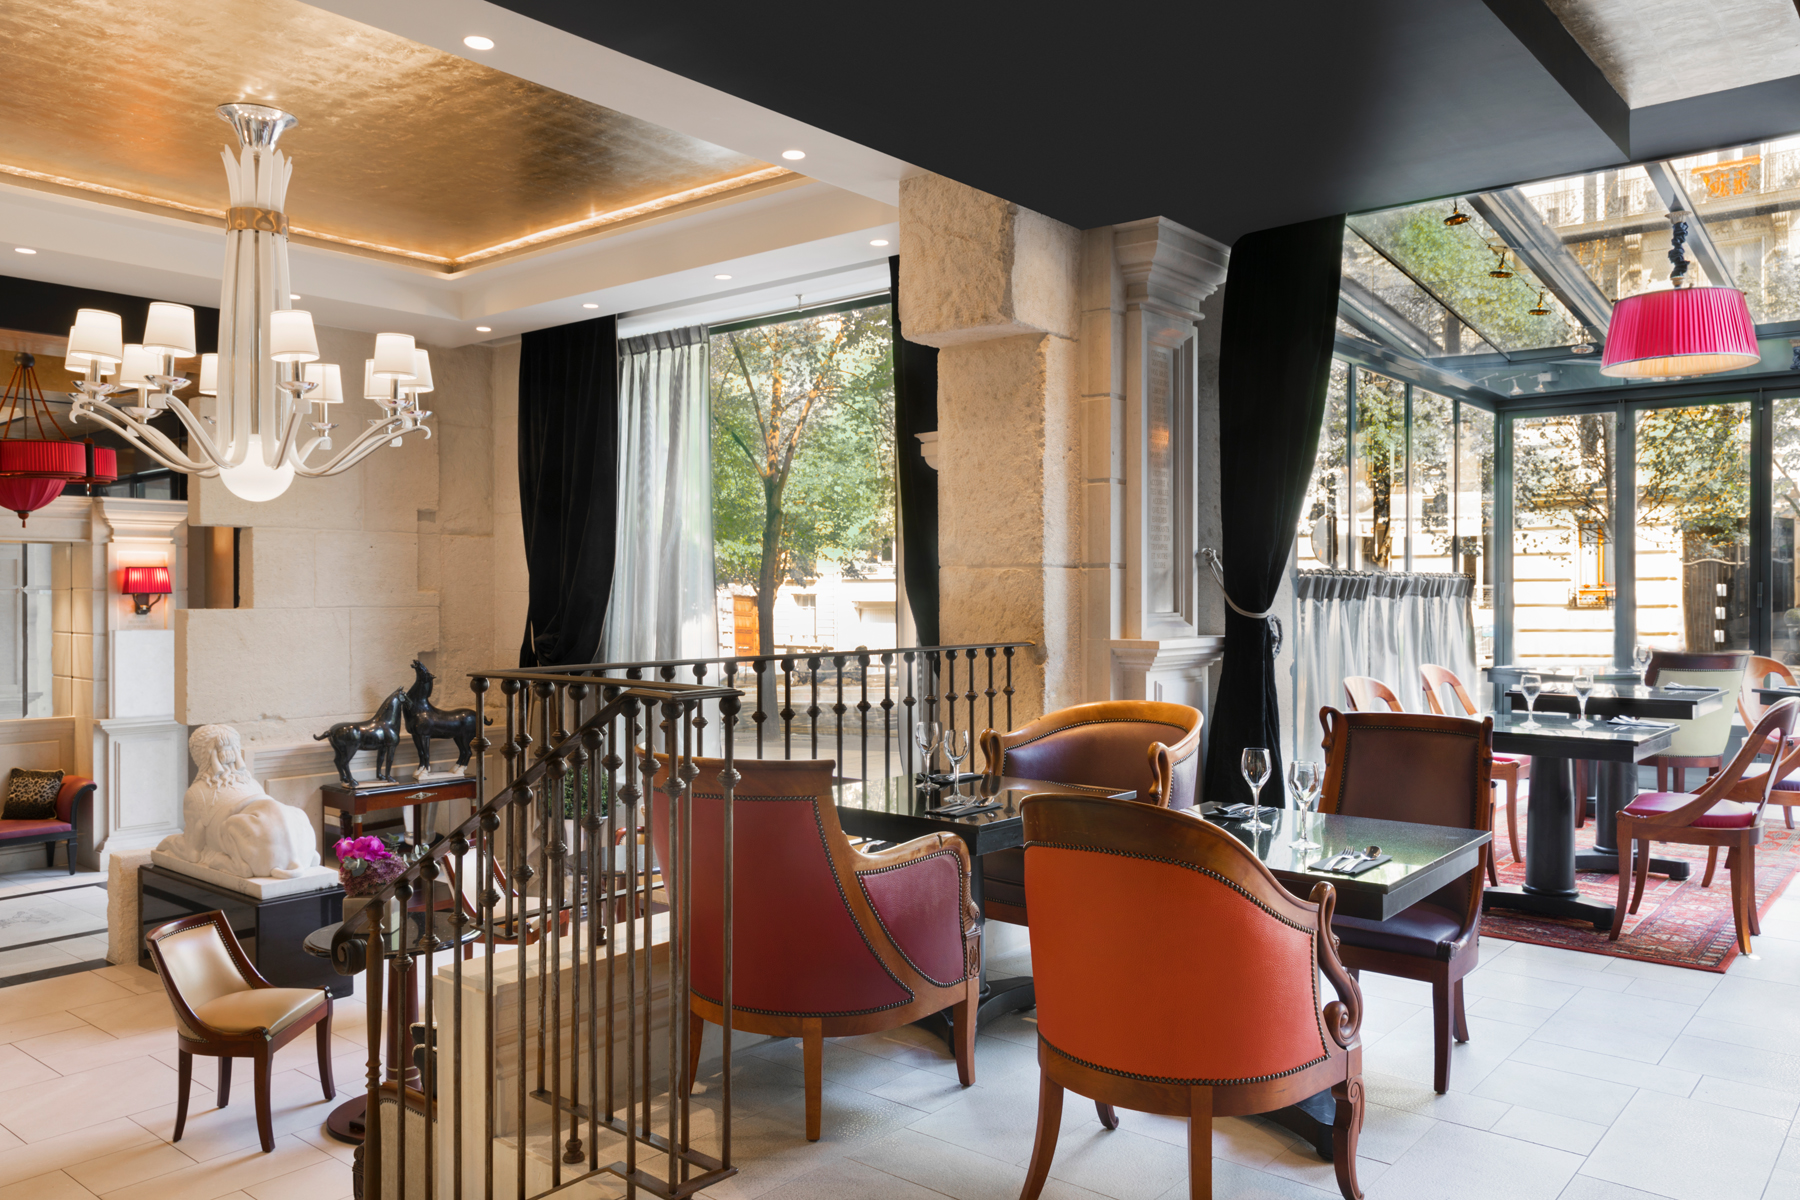 101/Champs Elysees/Bar/PAGE BAR - PETIT DEJ - HEADER.jpg